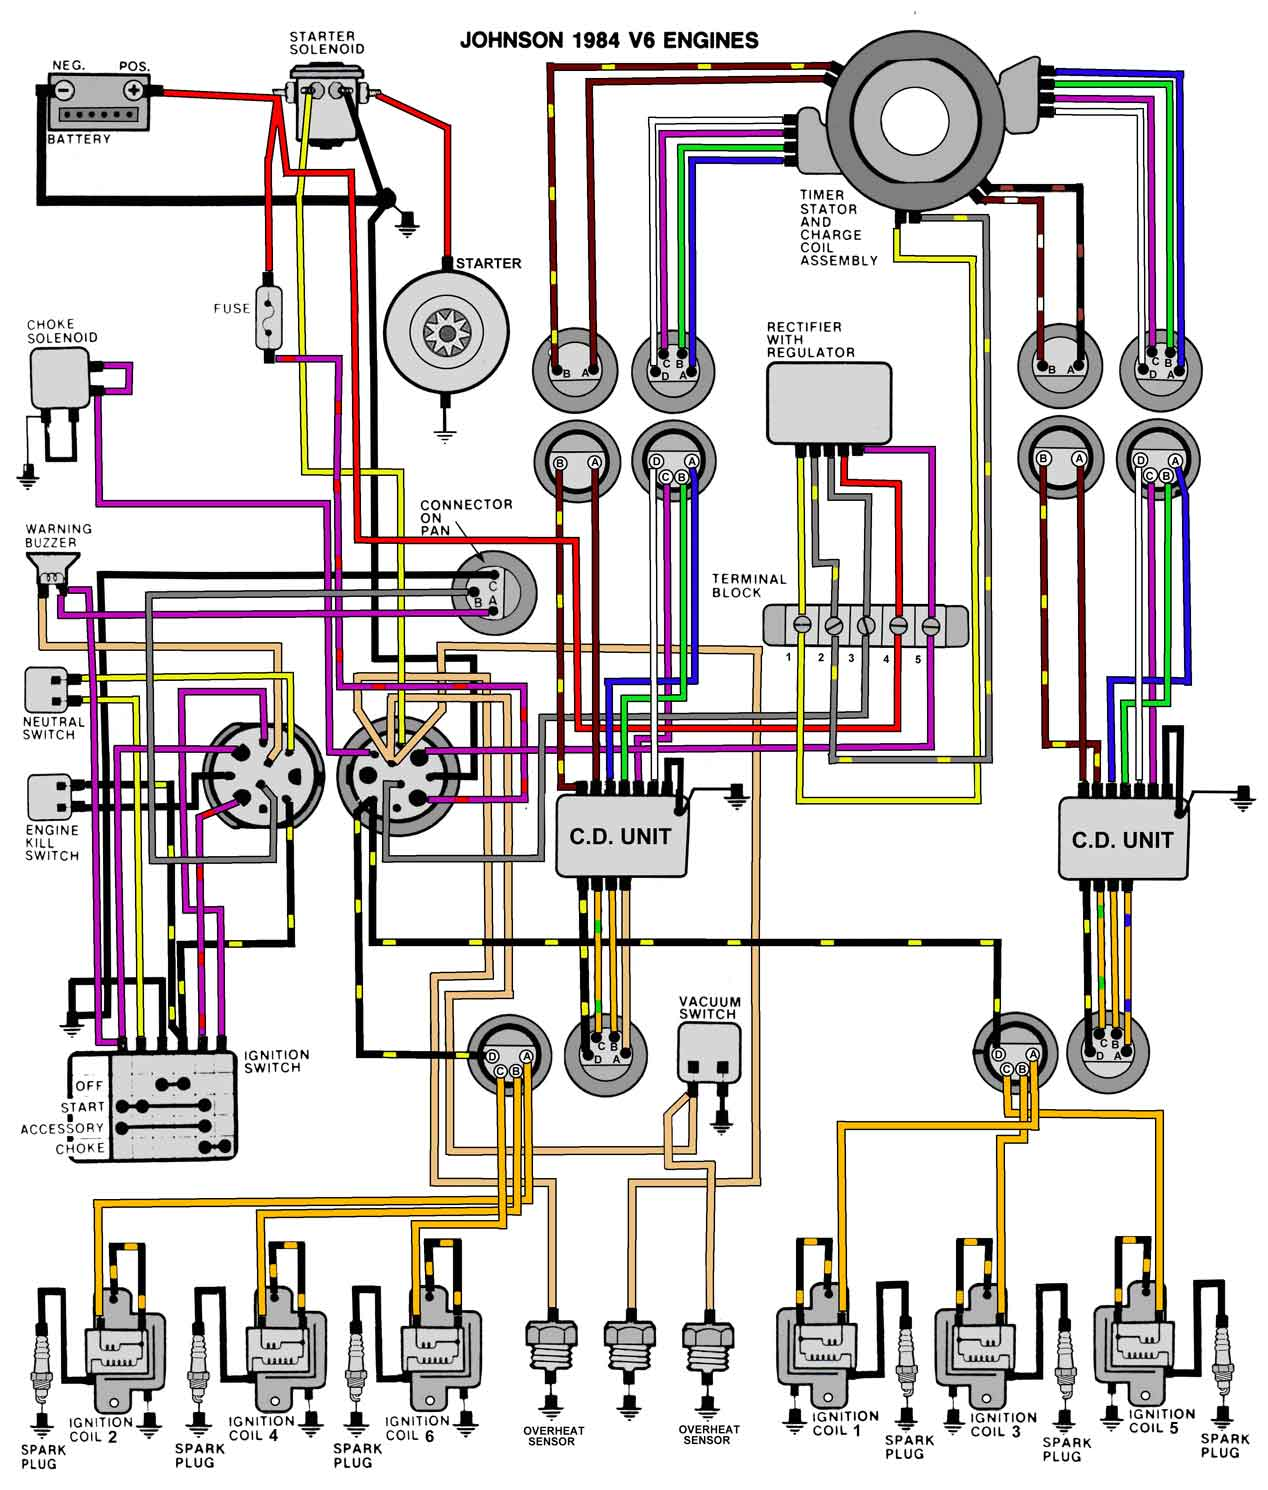 84_V6 mastertech marine evinrude johnson outboard wiring diagrams wiring schematics at honlapkeszites.co